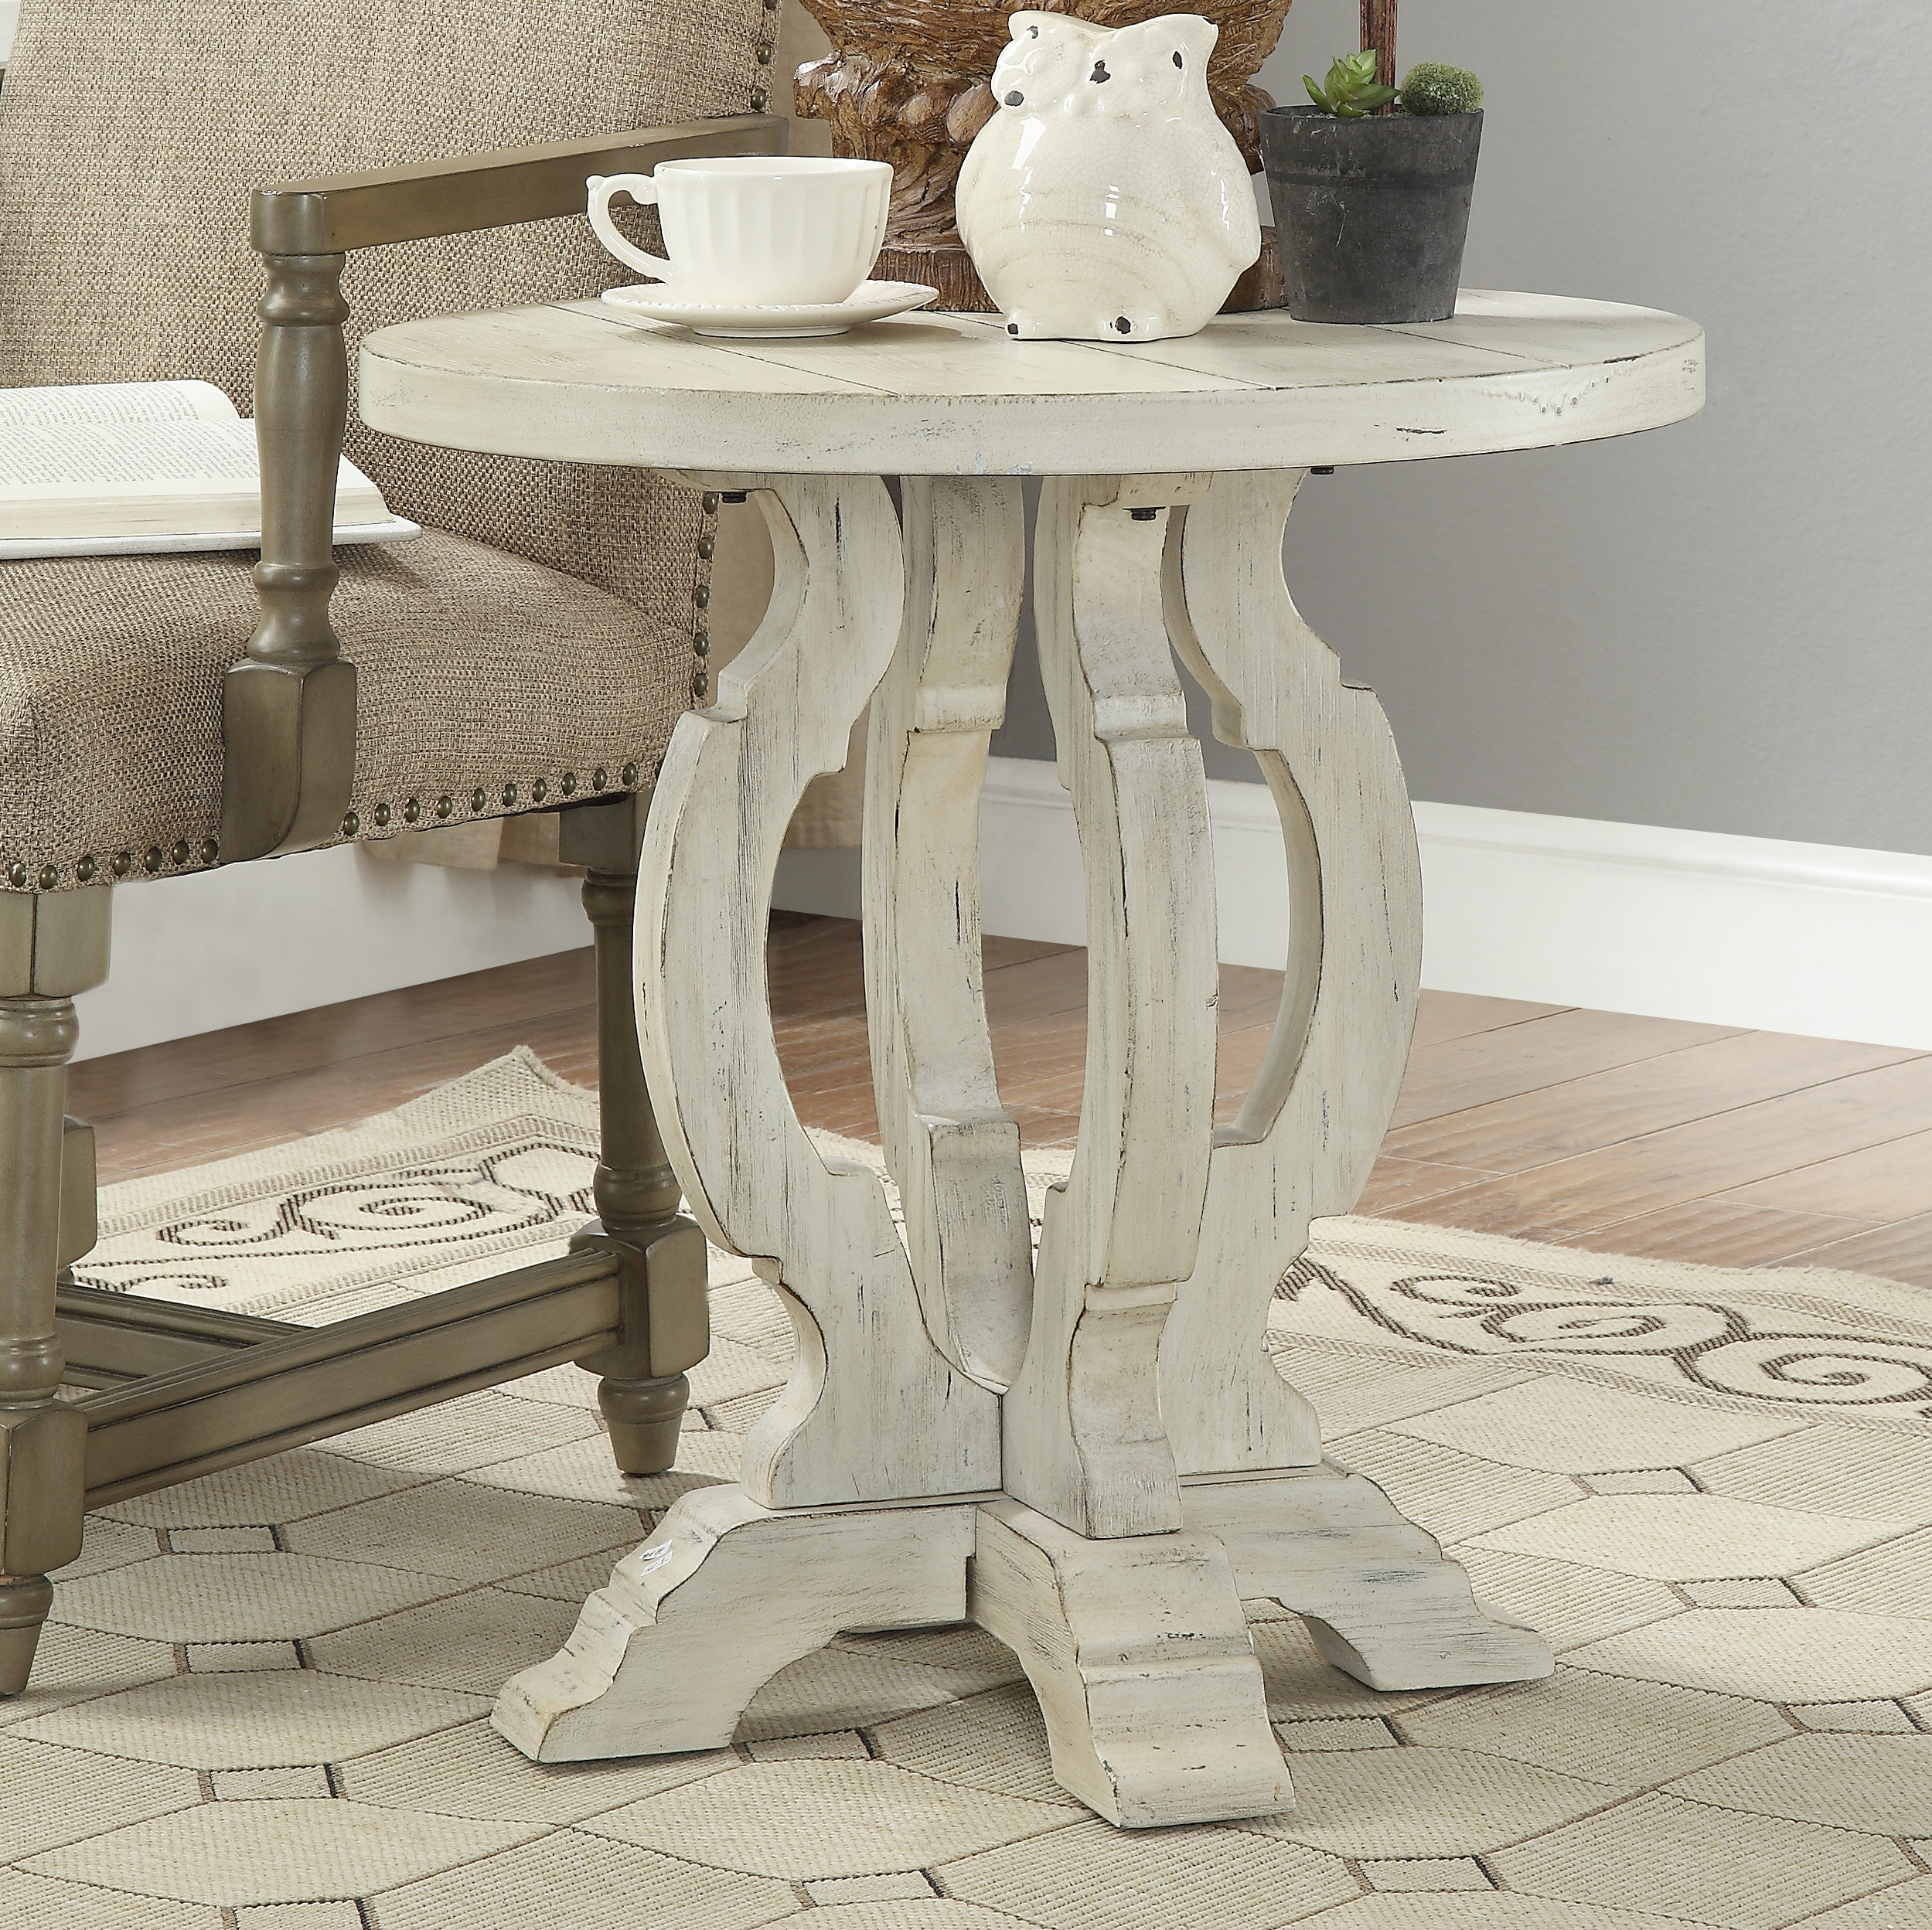 pie shaped end table nash ifrane accent quickview round fitted tablecloths marble style coffee pottery barn dining set glass carpet door trim whole linens lighting fixtures bar